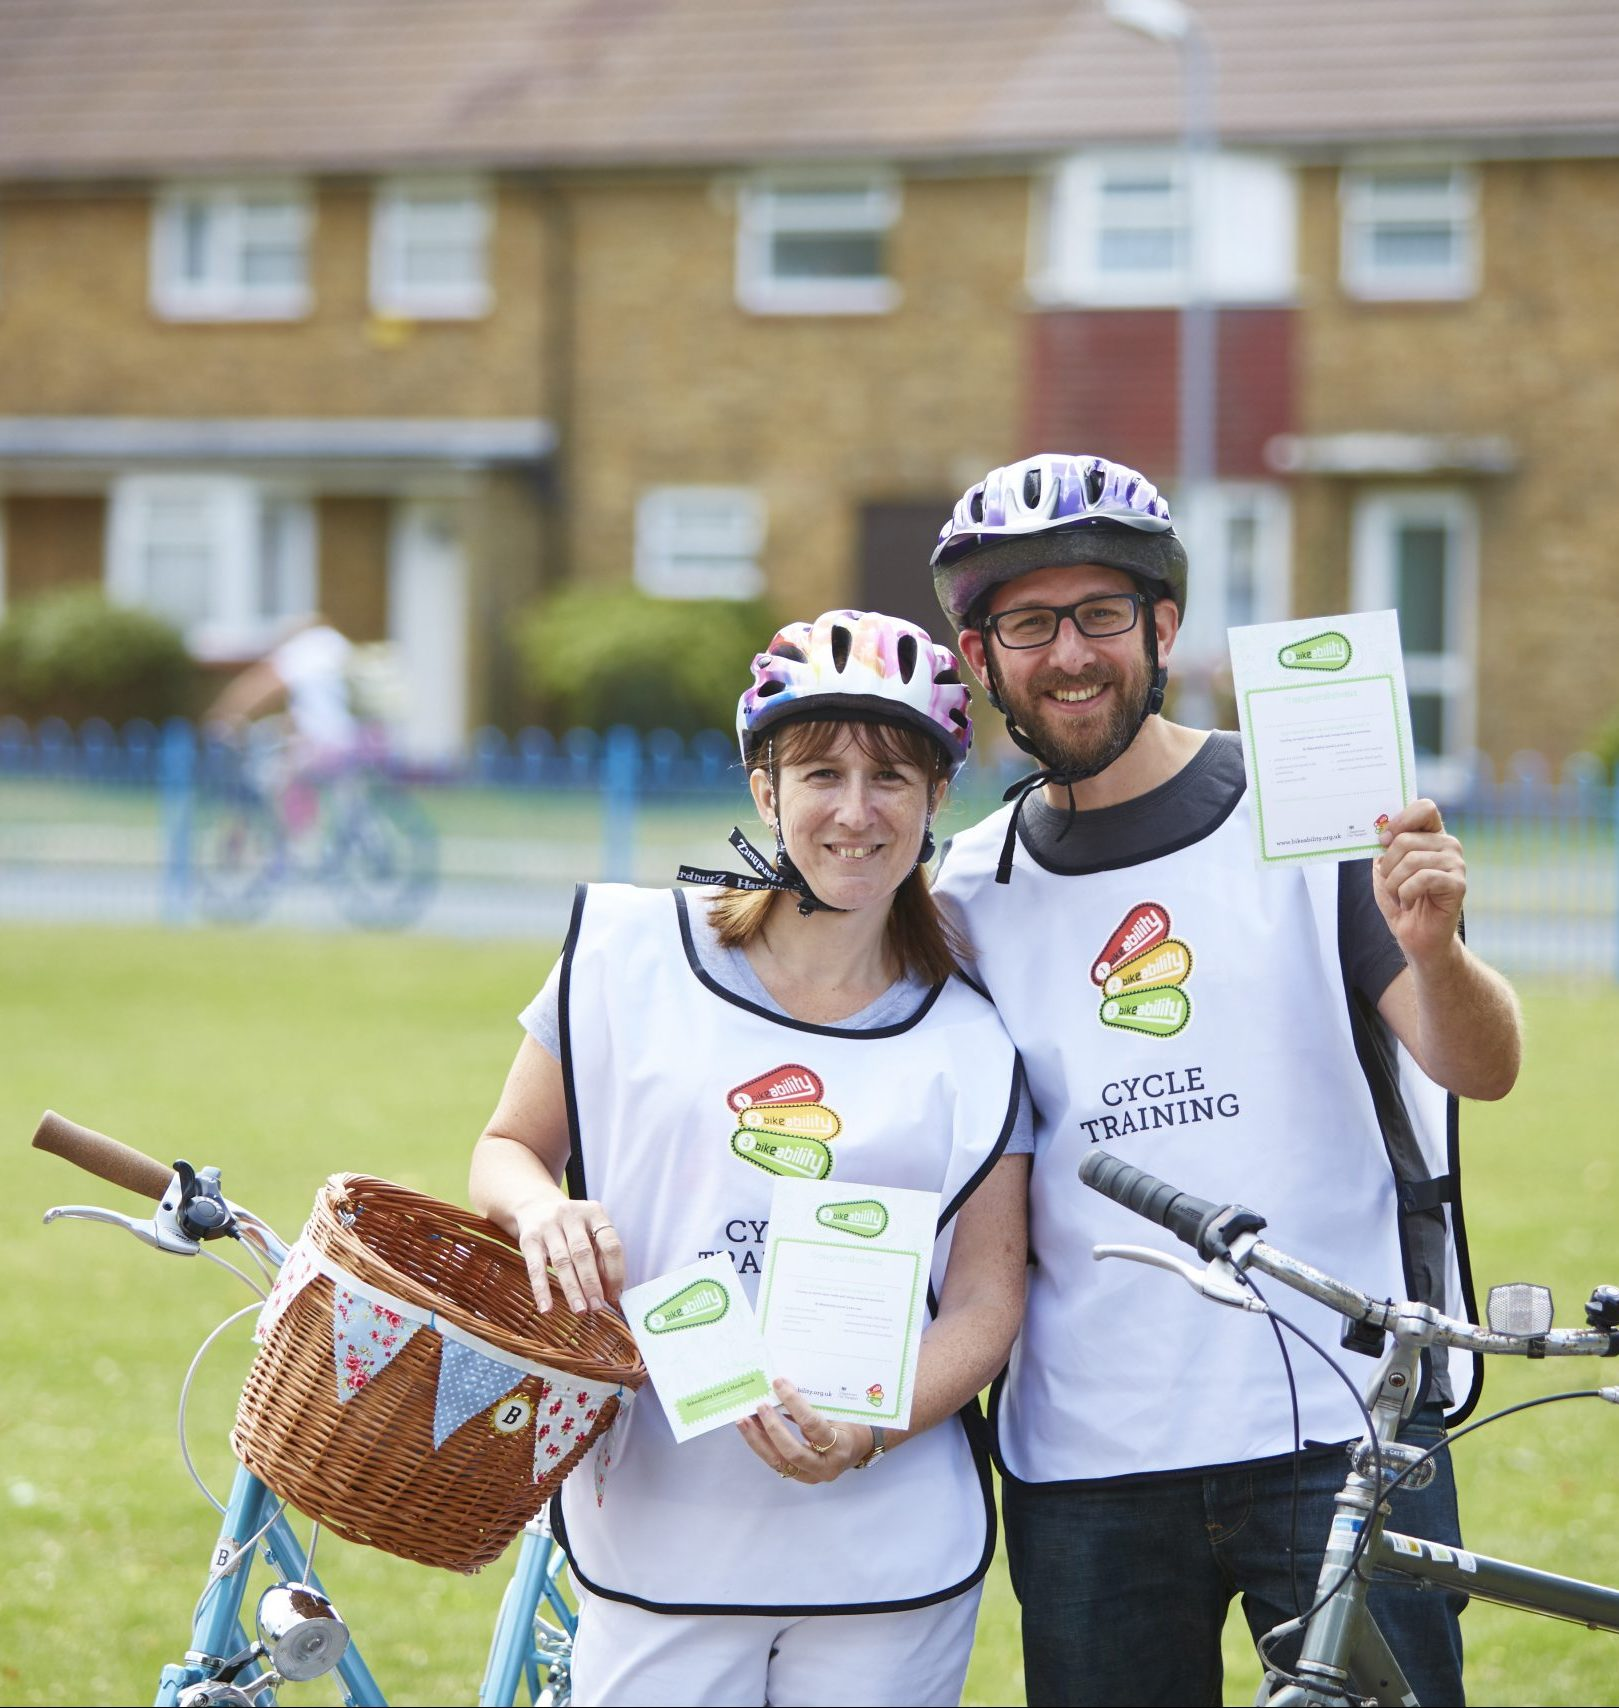 A man and a woman holding Bikeability certificates